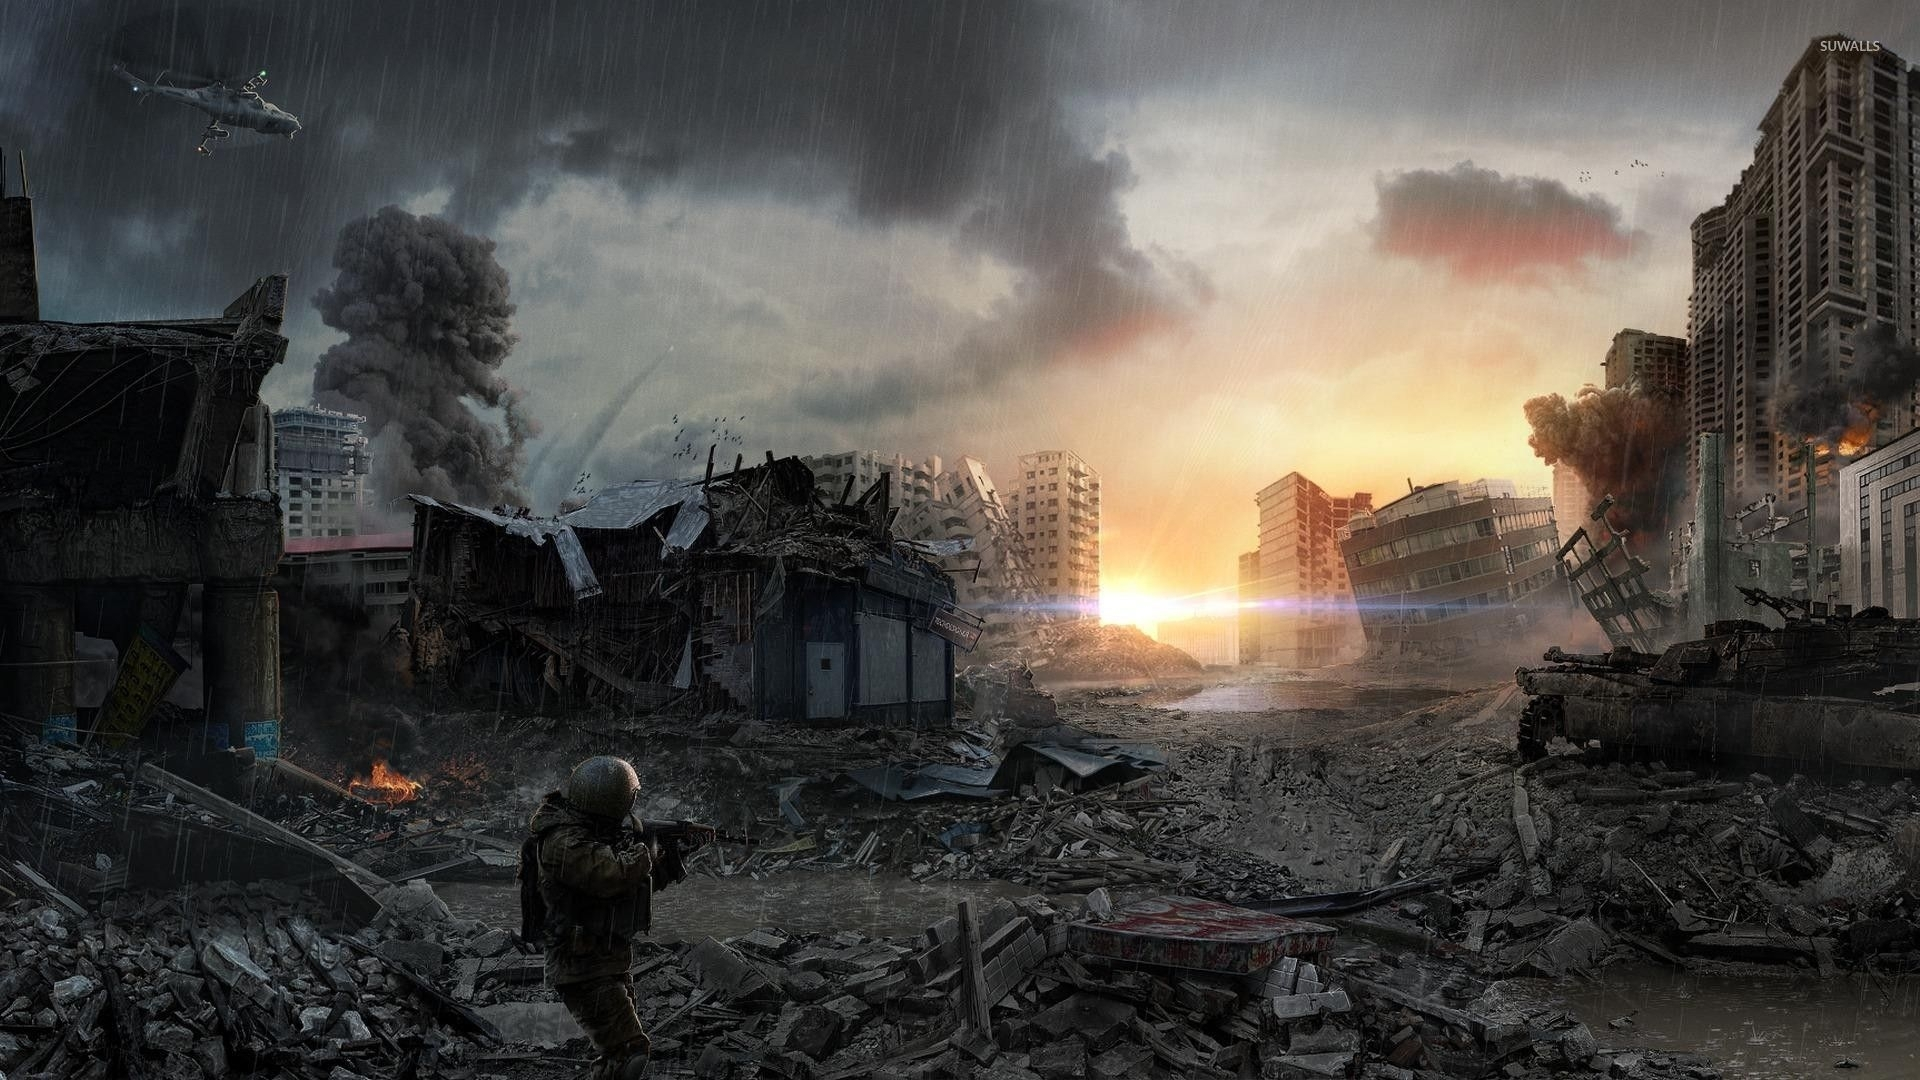 post-apocalyptic city wallpaper - fantasy wallpapers - #28463